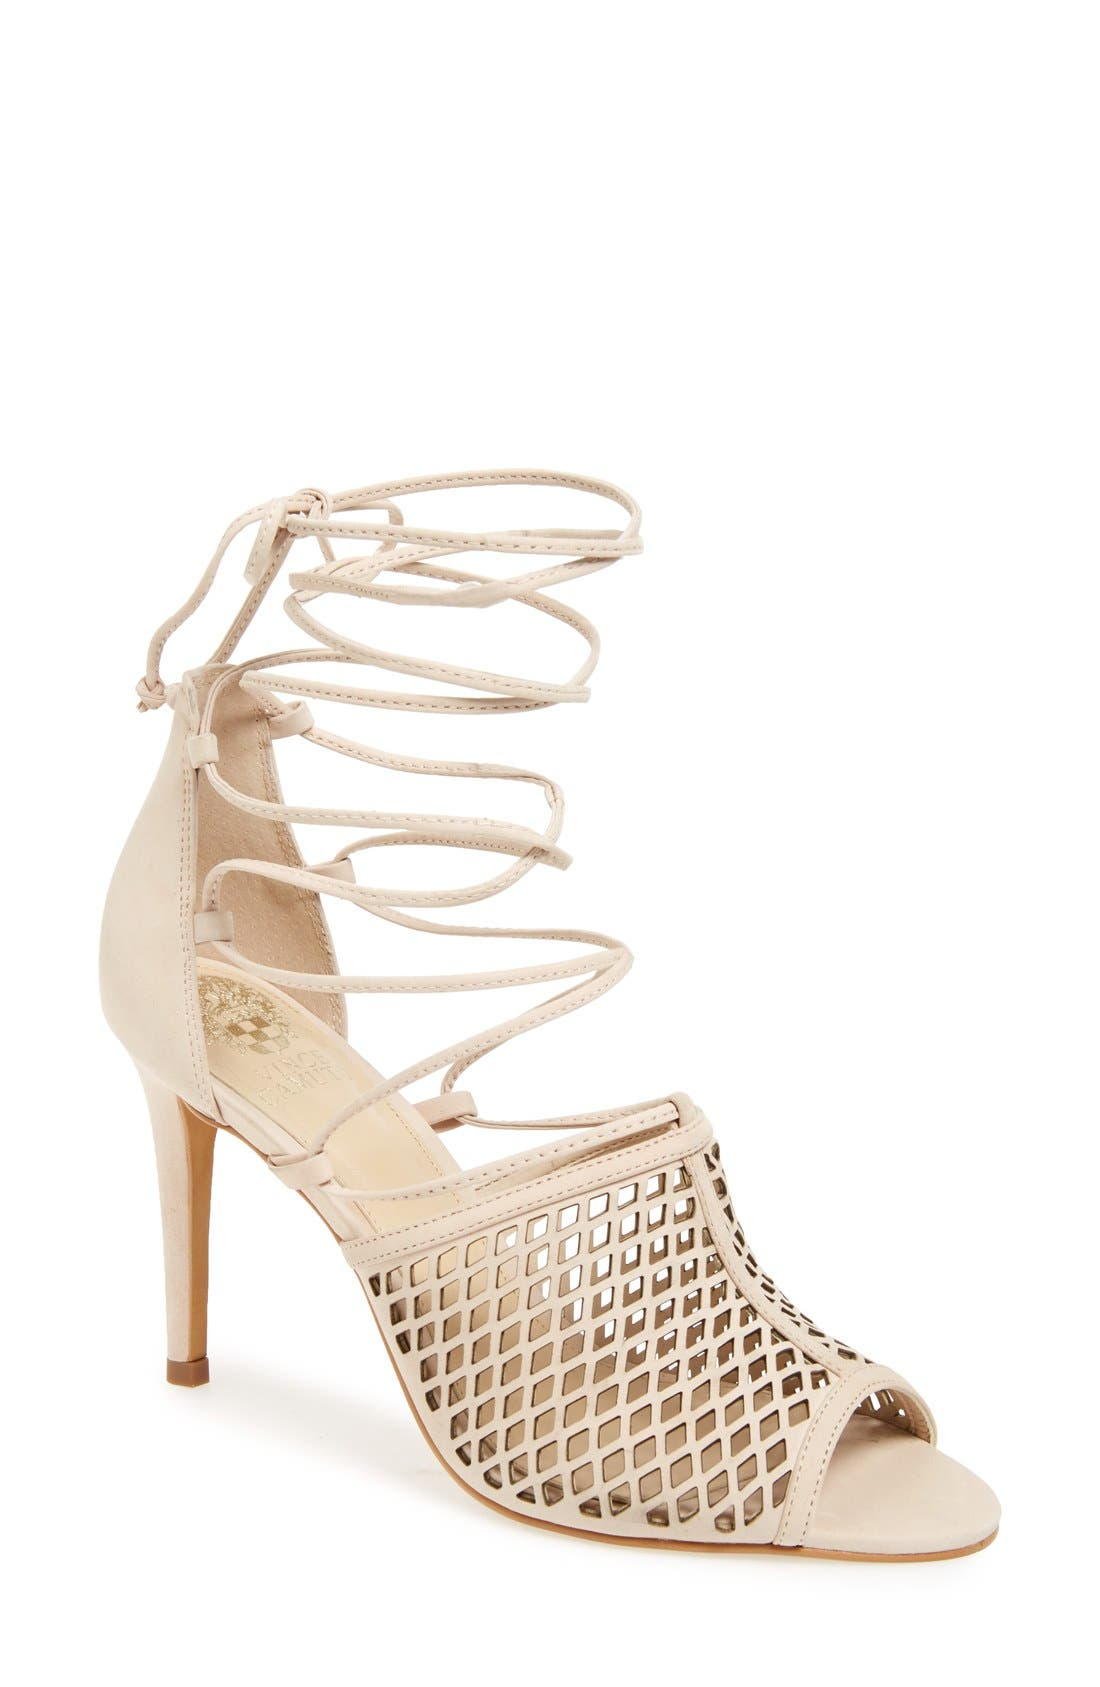 Alternate Image 1 Selected - Vince Camuto 'Vasha' Lace-Up Sandal (Women) (Nordstrom Exclusive)